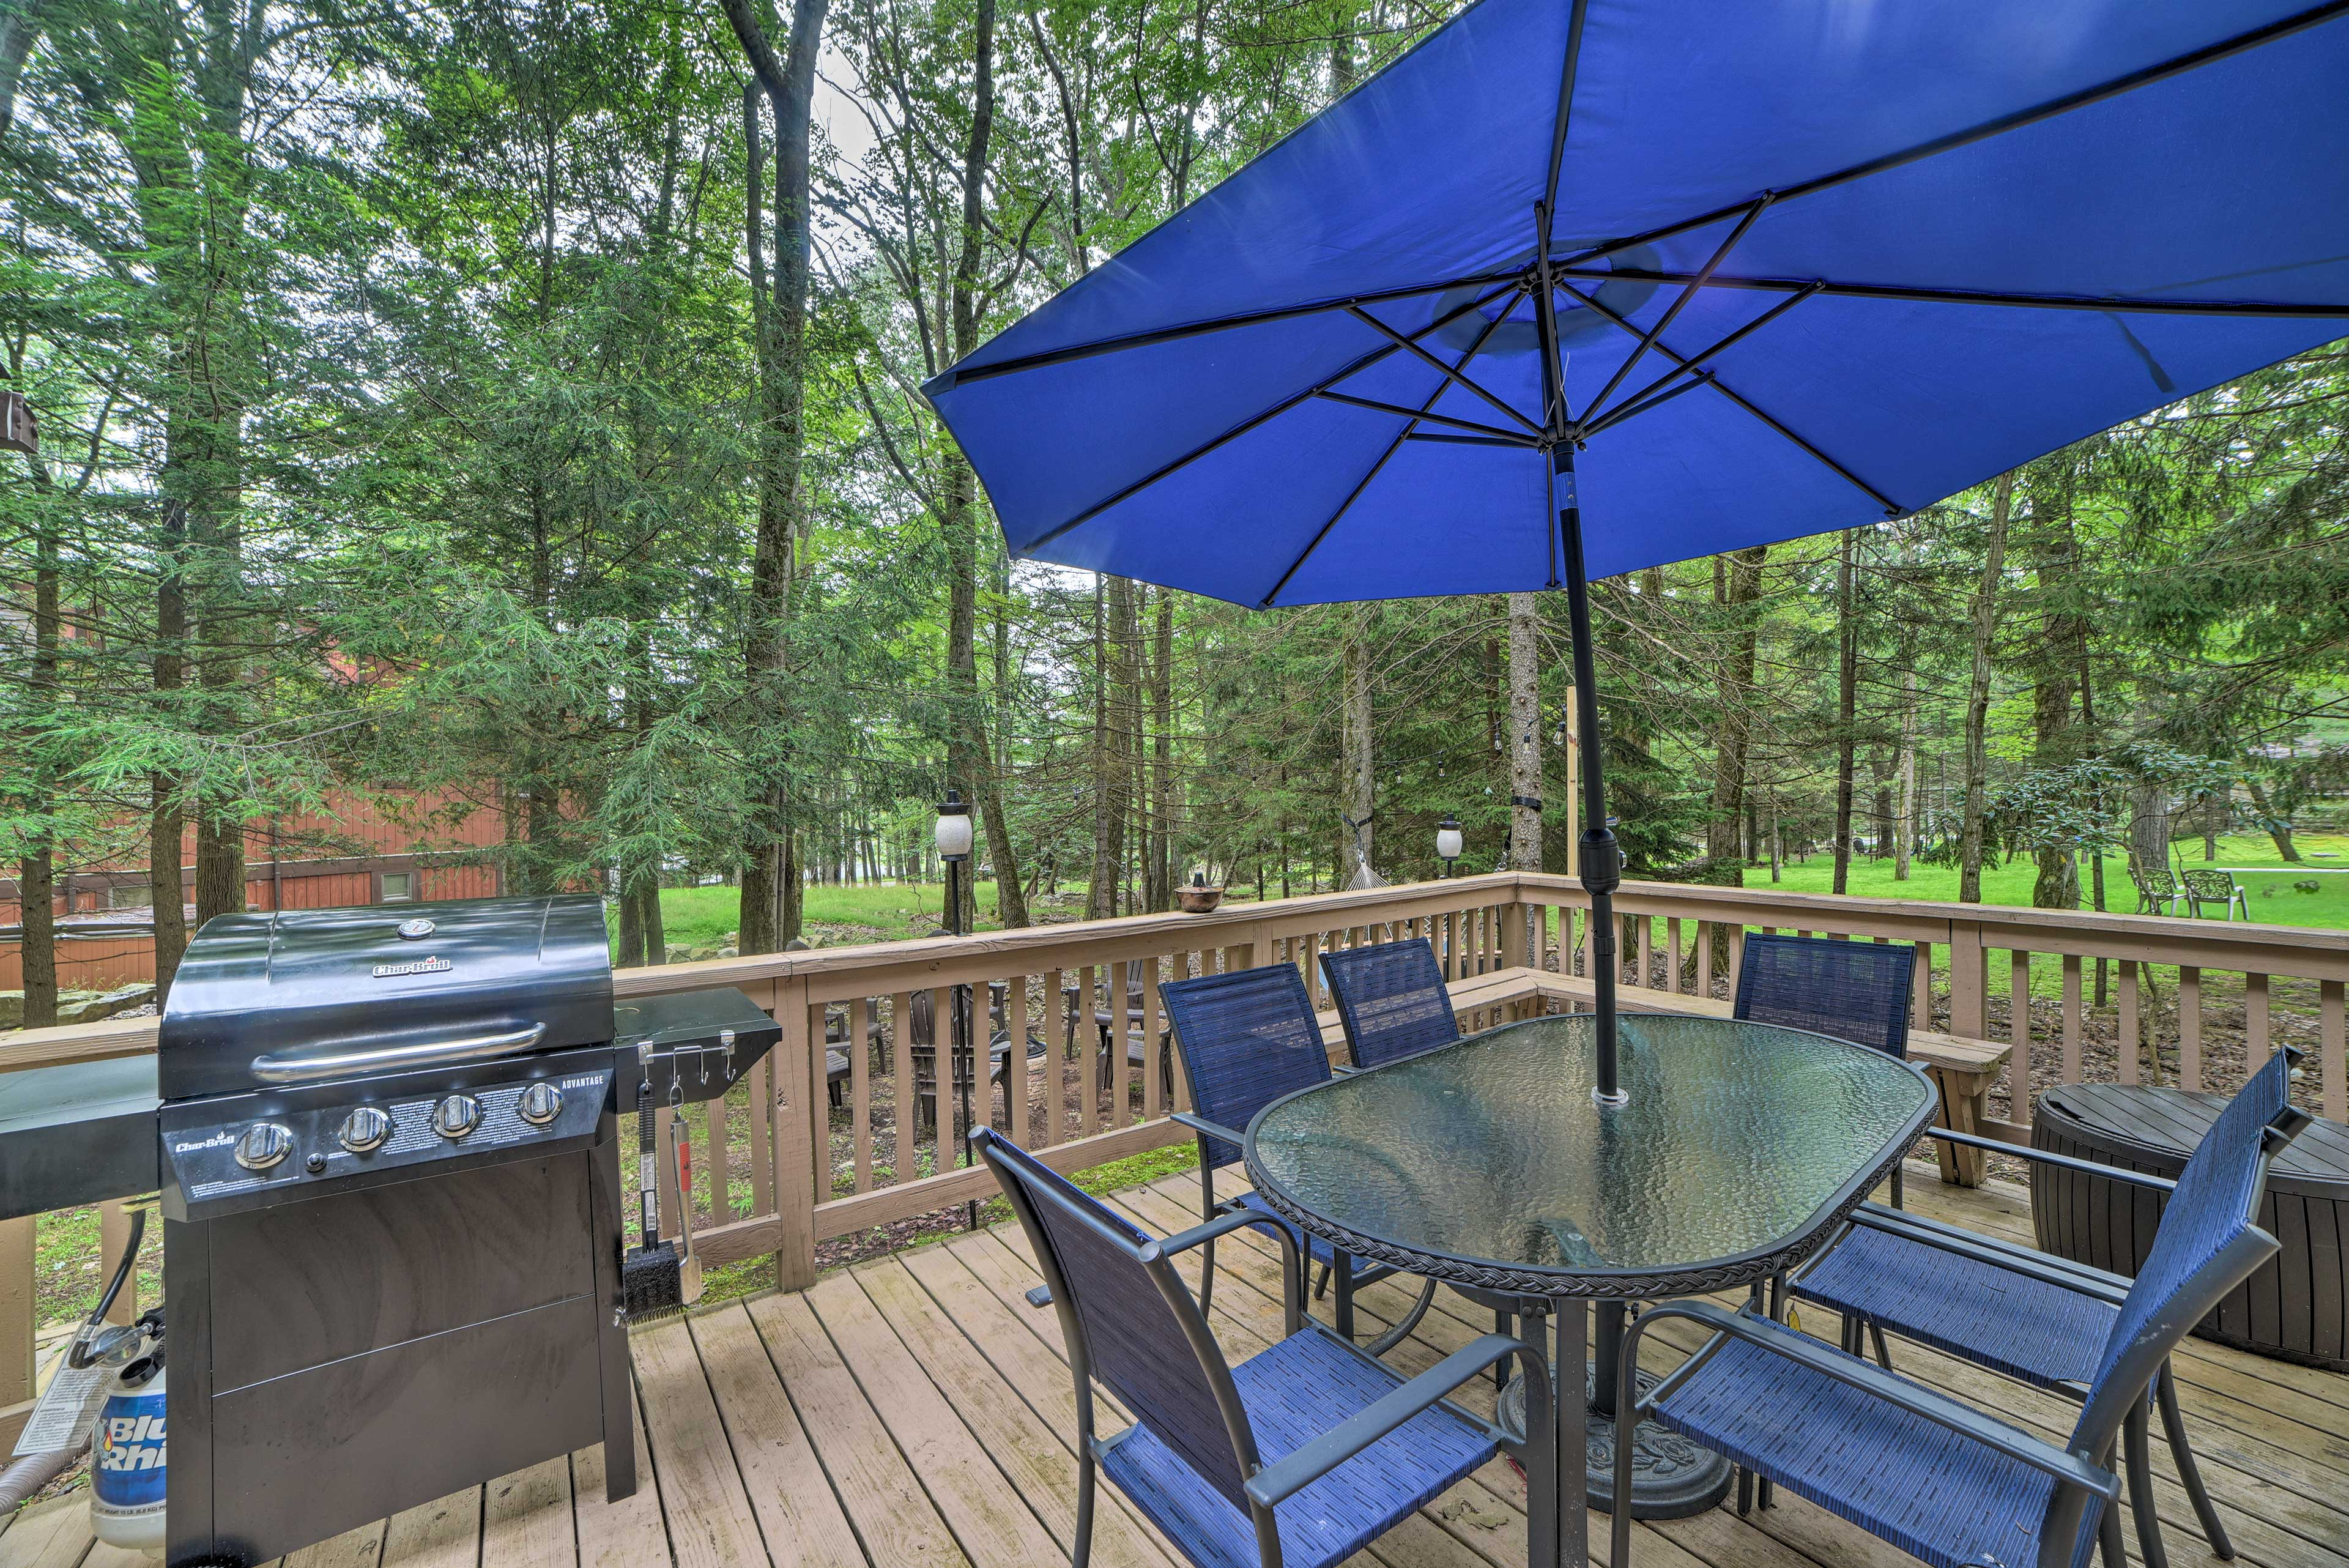 Spend time outdoors on the deck during your stay at this vacation rental.